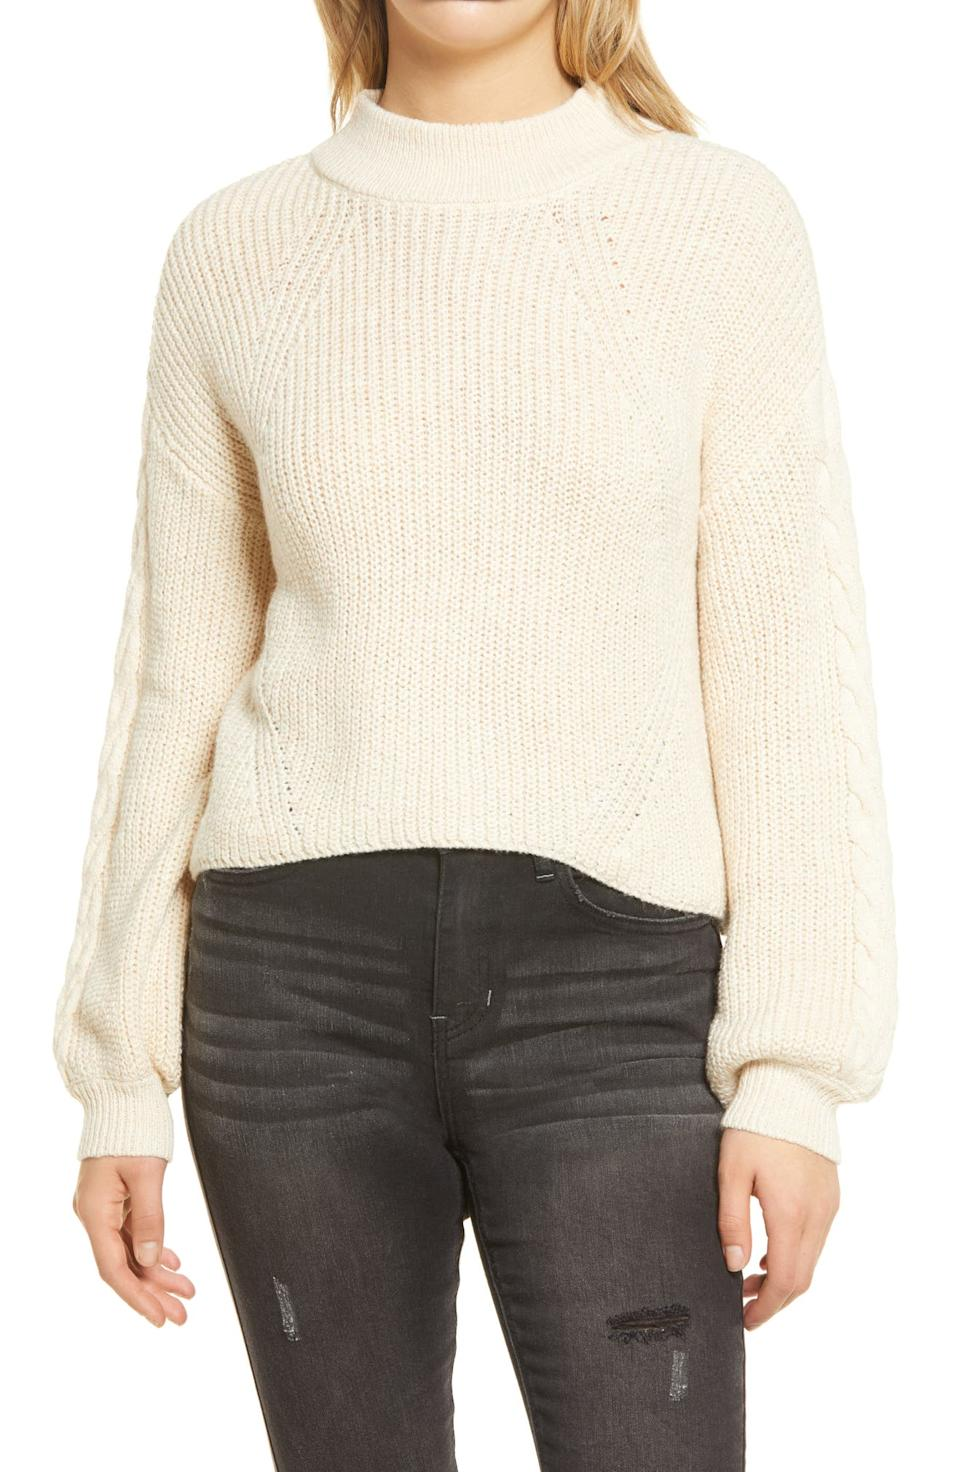 BP. Cable Knit Balloon Sleeve Sweater. Image via Nordstrom.